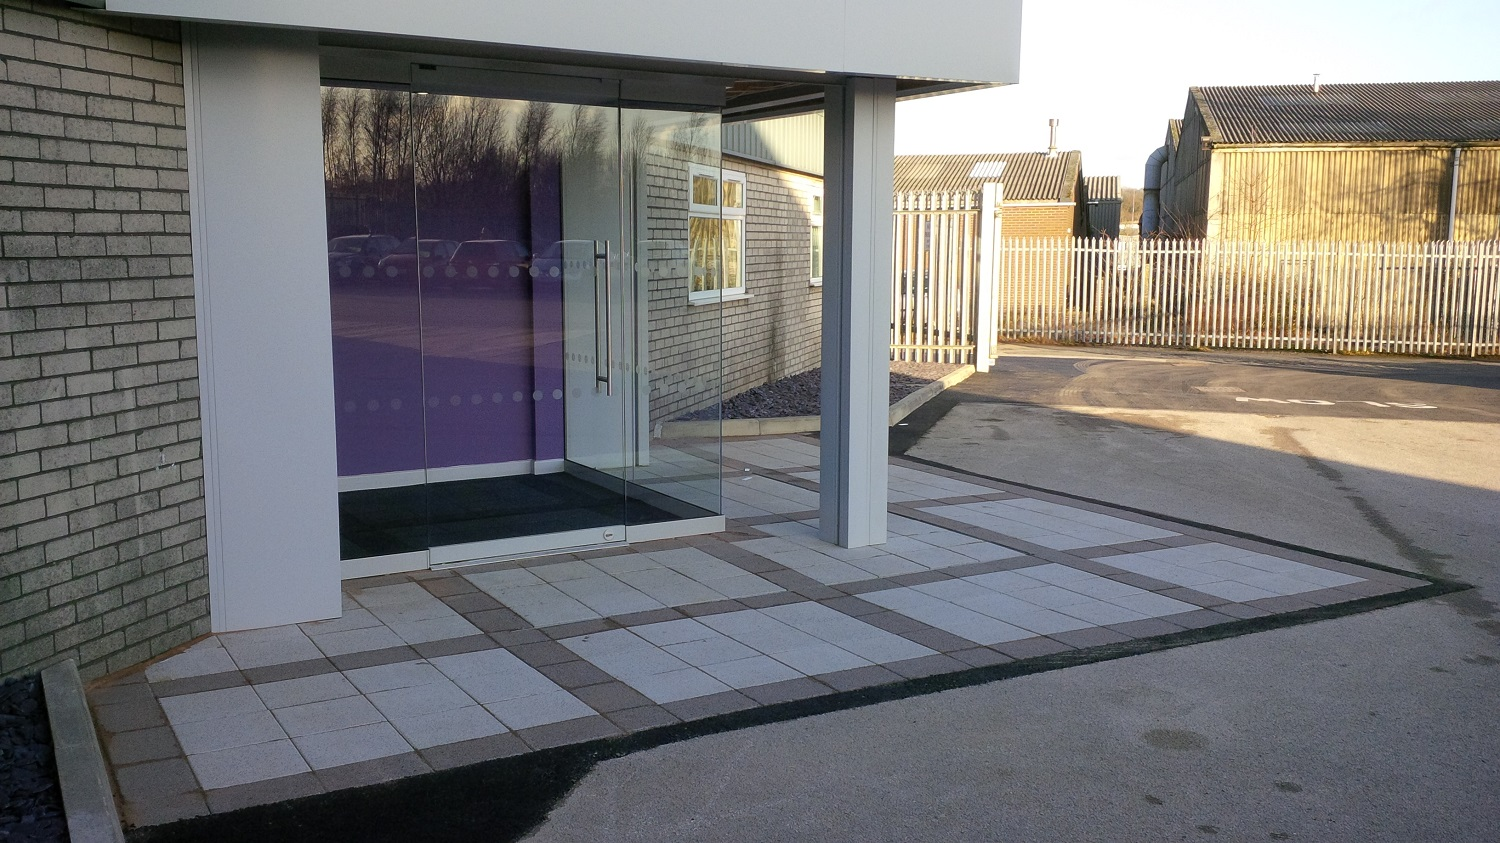 H5 Marshalls Argent Paving in Pinxton, Derbyshire